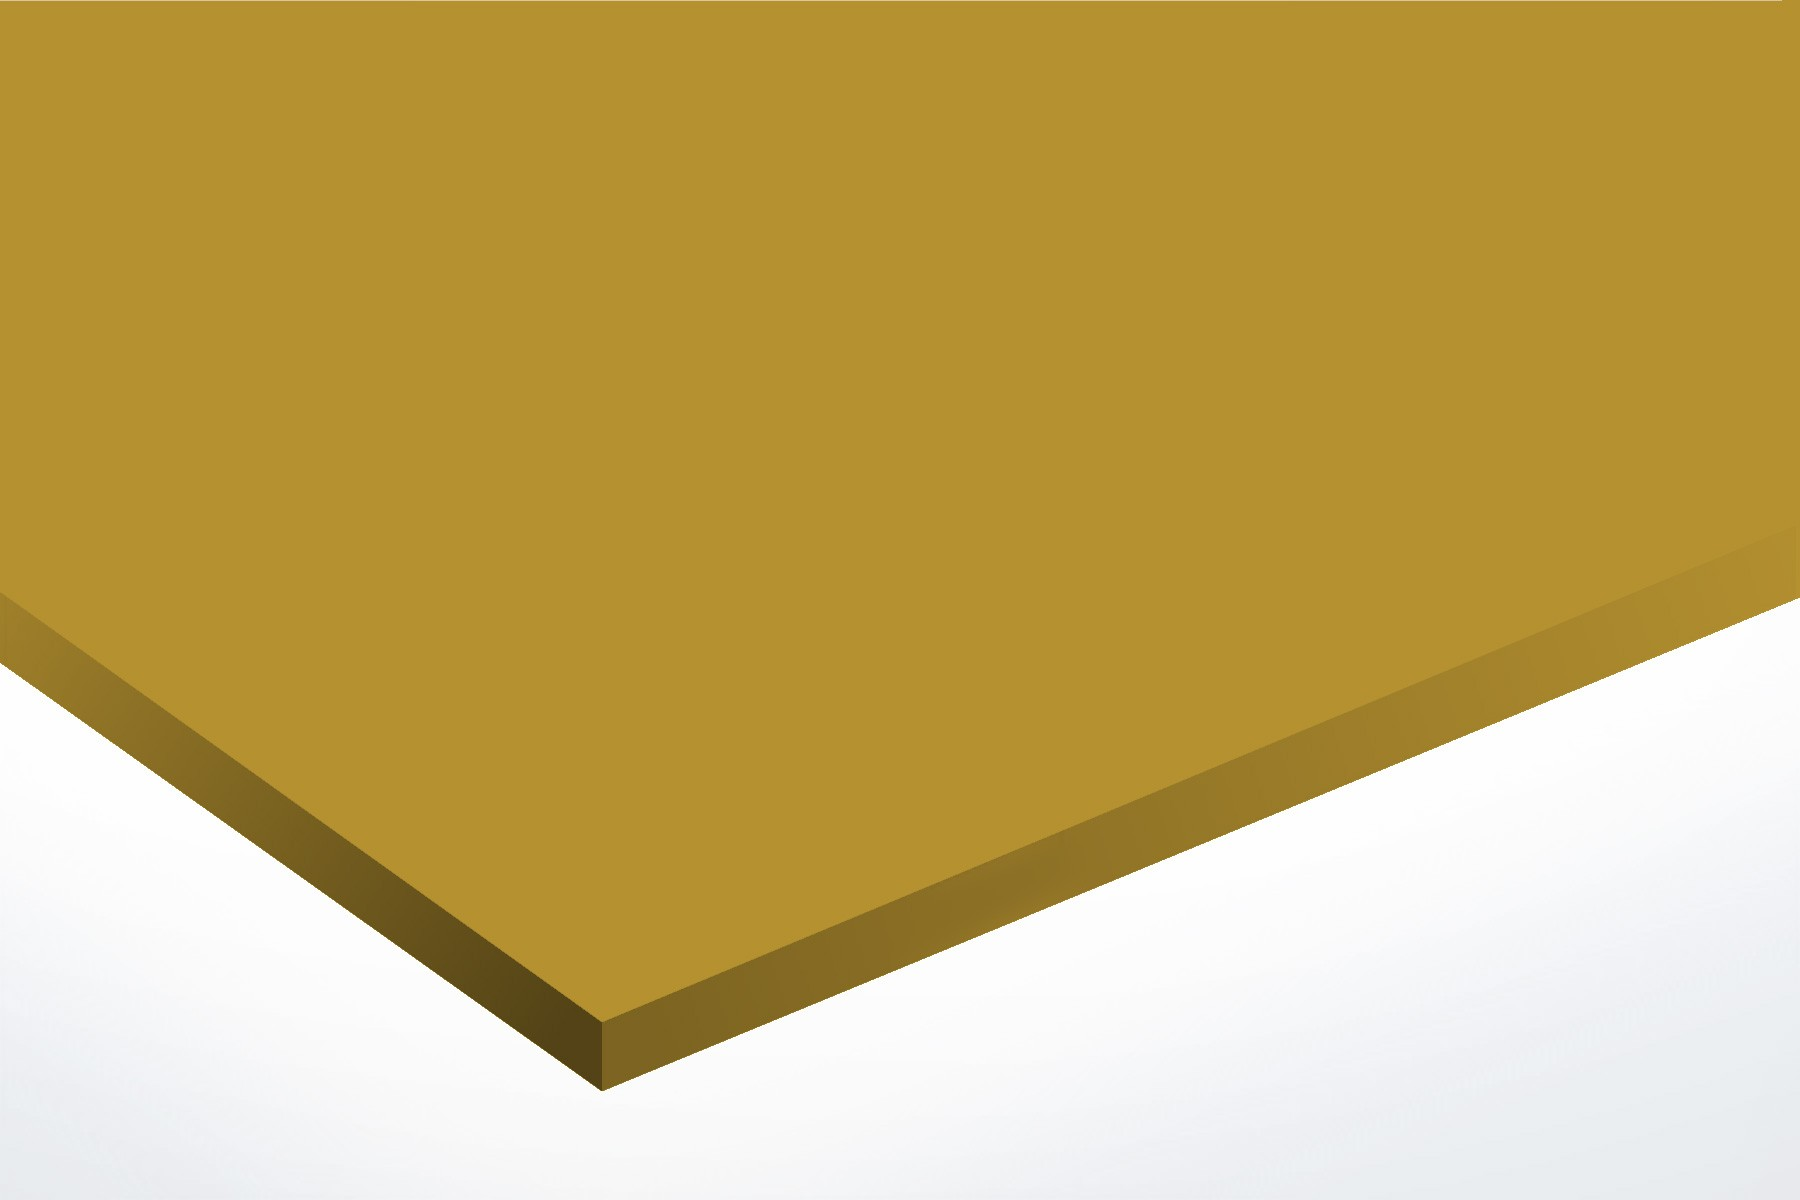 Anodised Aluminium Gold,  Matte, 3mm x 1000mm x 500mm